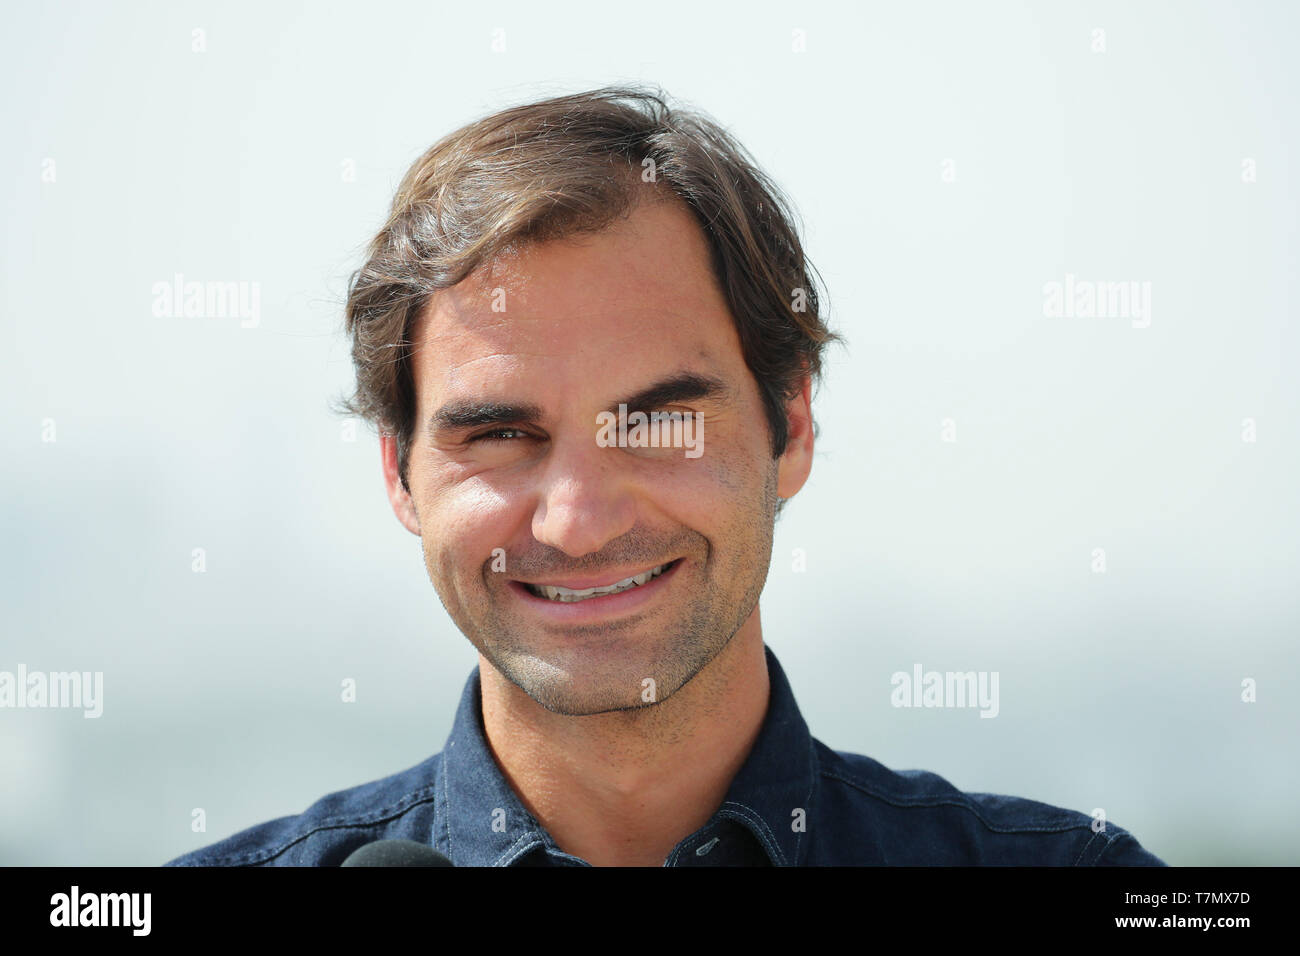 Portrait of Swiss tennis player Roger Federer during press conference, Dubai, United Arab Emirates - Stock Image